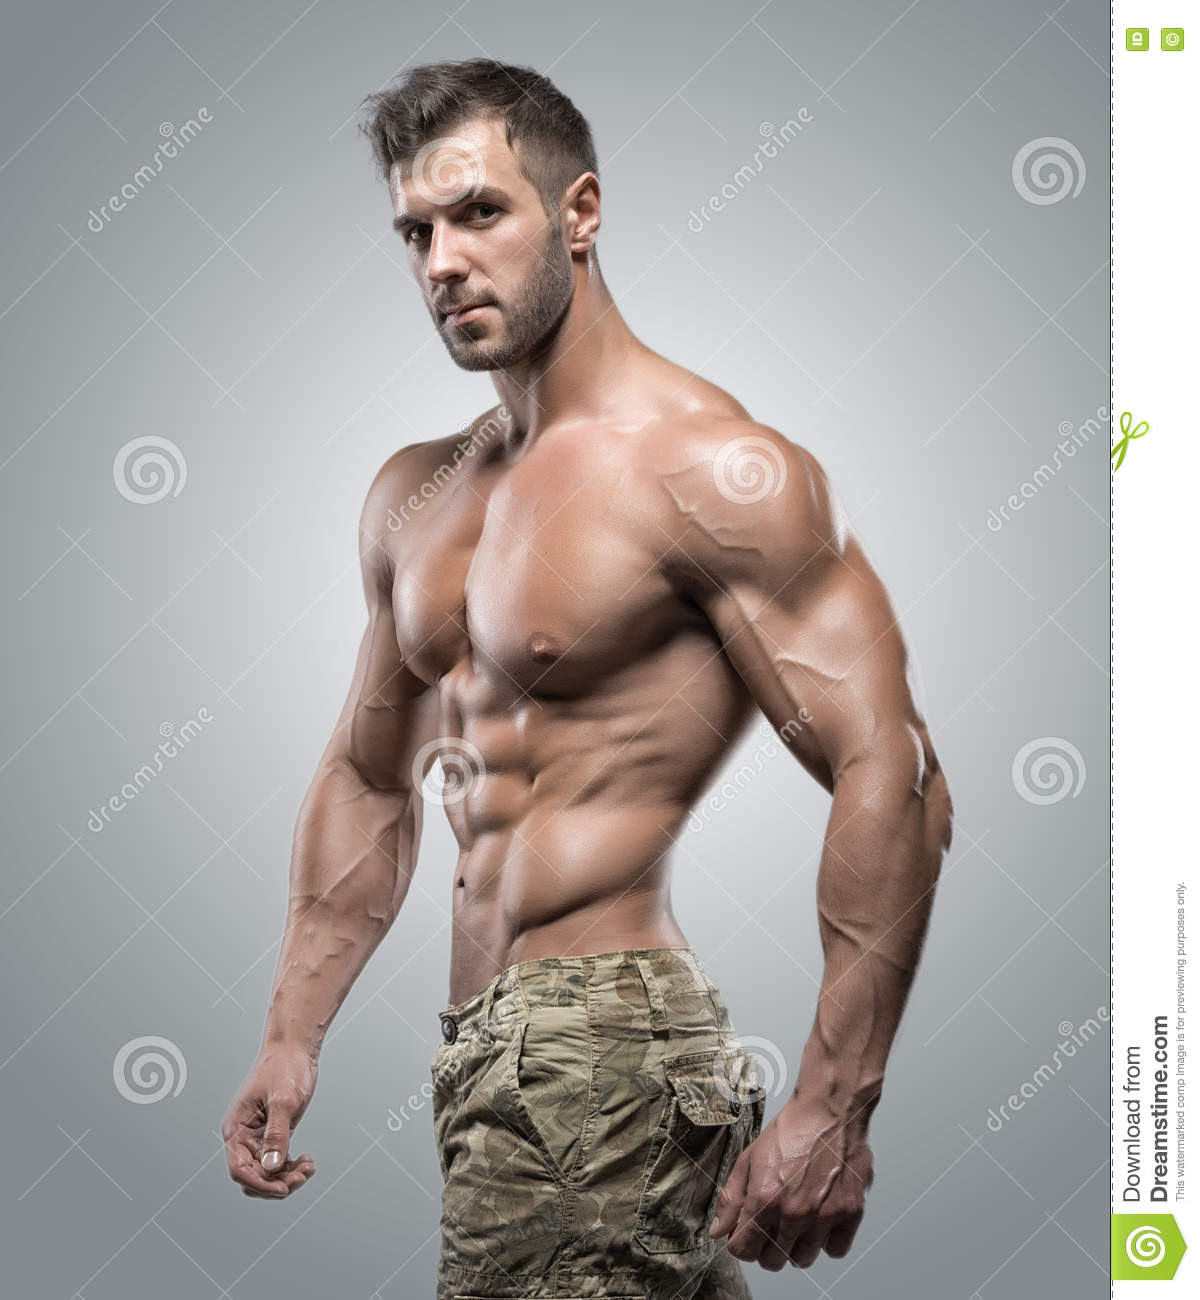 Muscular Athlete Bodybuilder Man In Camouflage Pants With